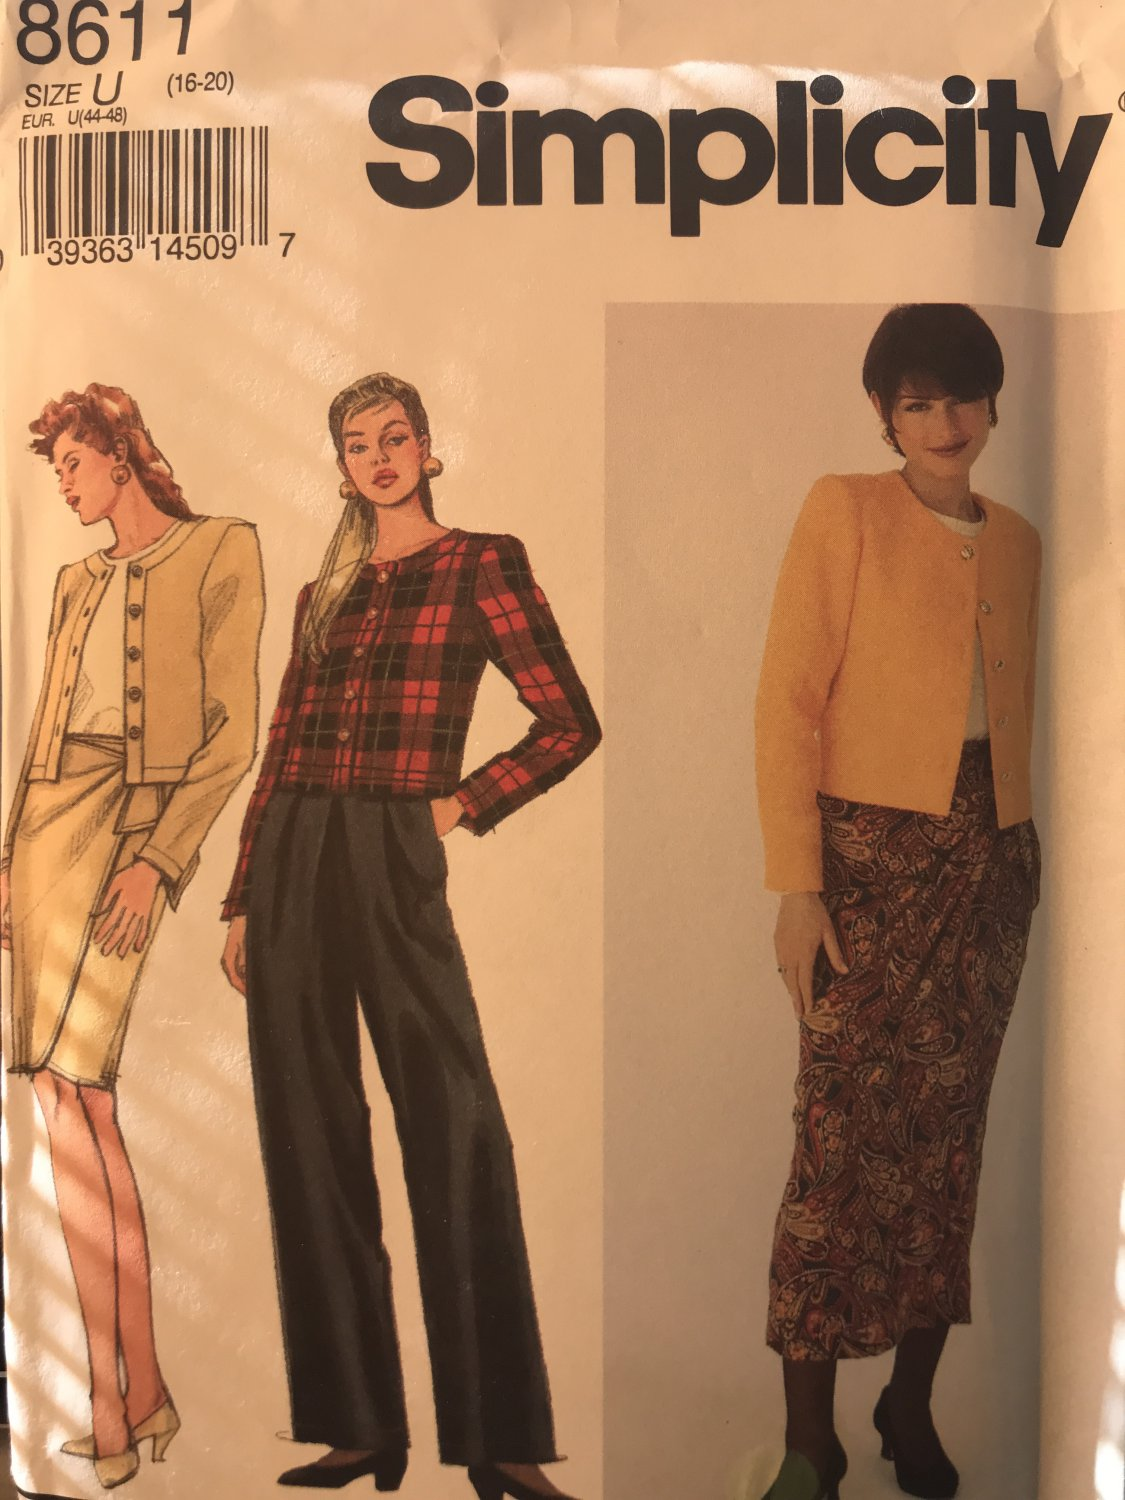 Simplicity 8611 Misses Mock Wrap Skirt, Pants and unlined Jacket Size 16-20 Sewing Pattern